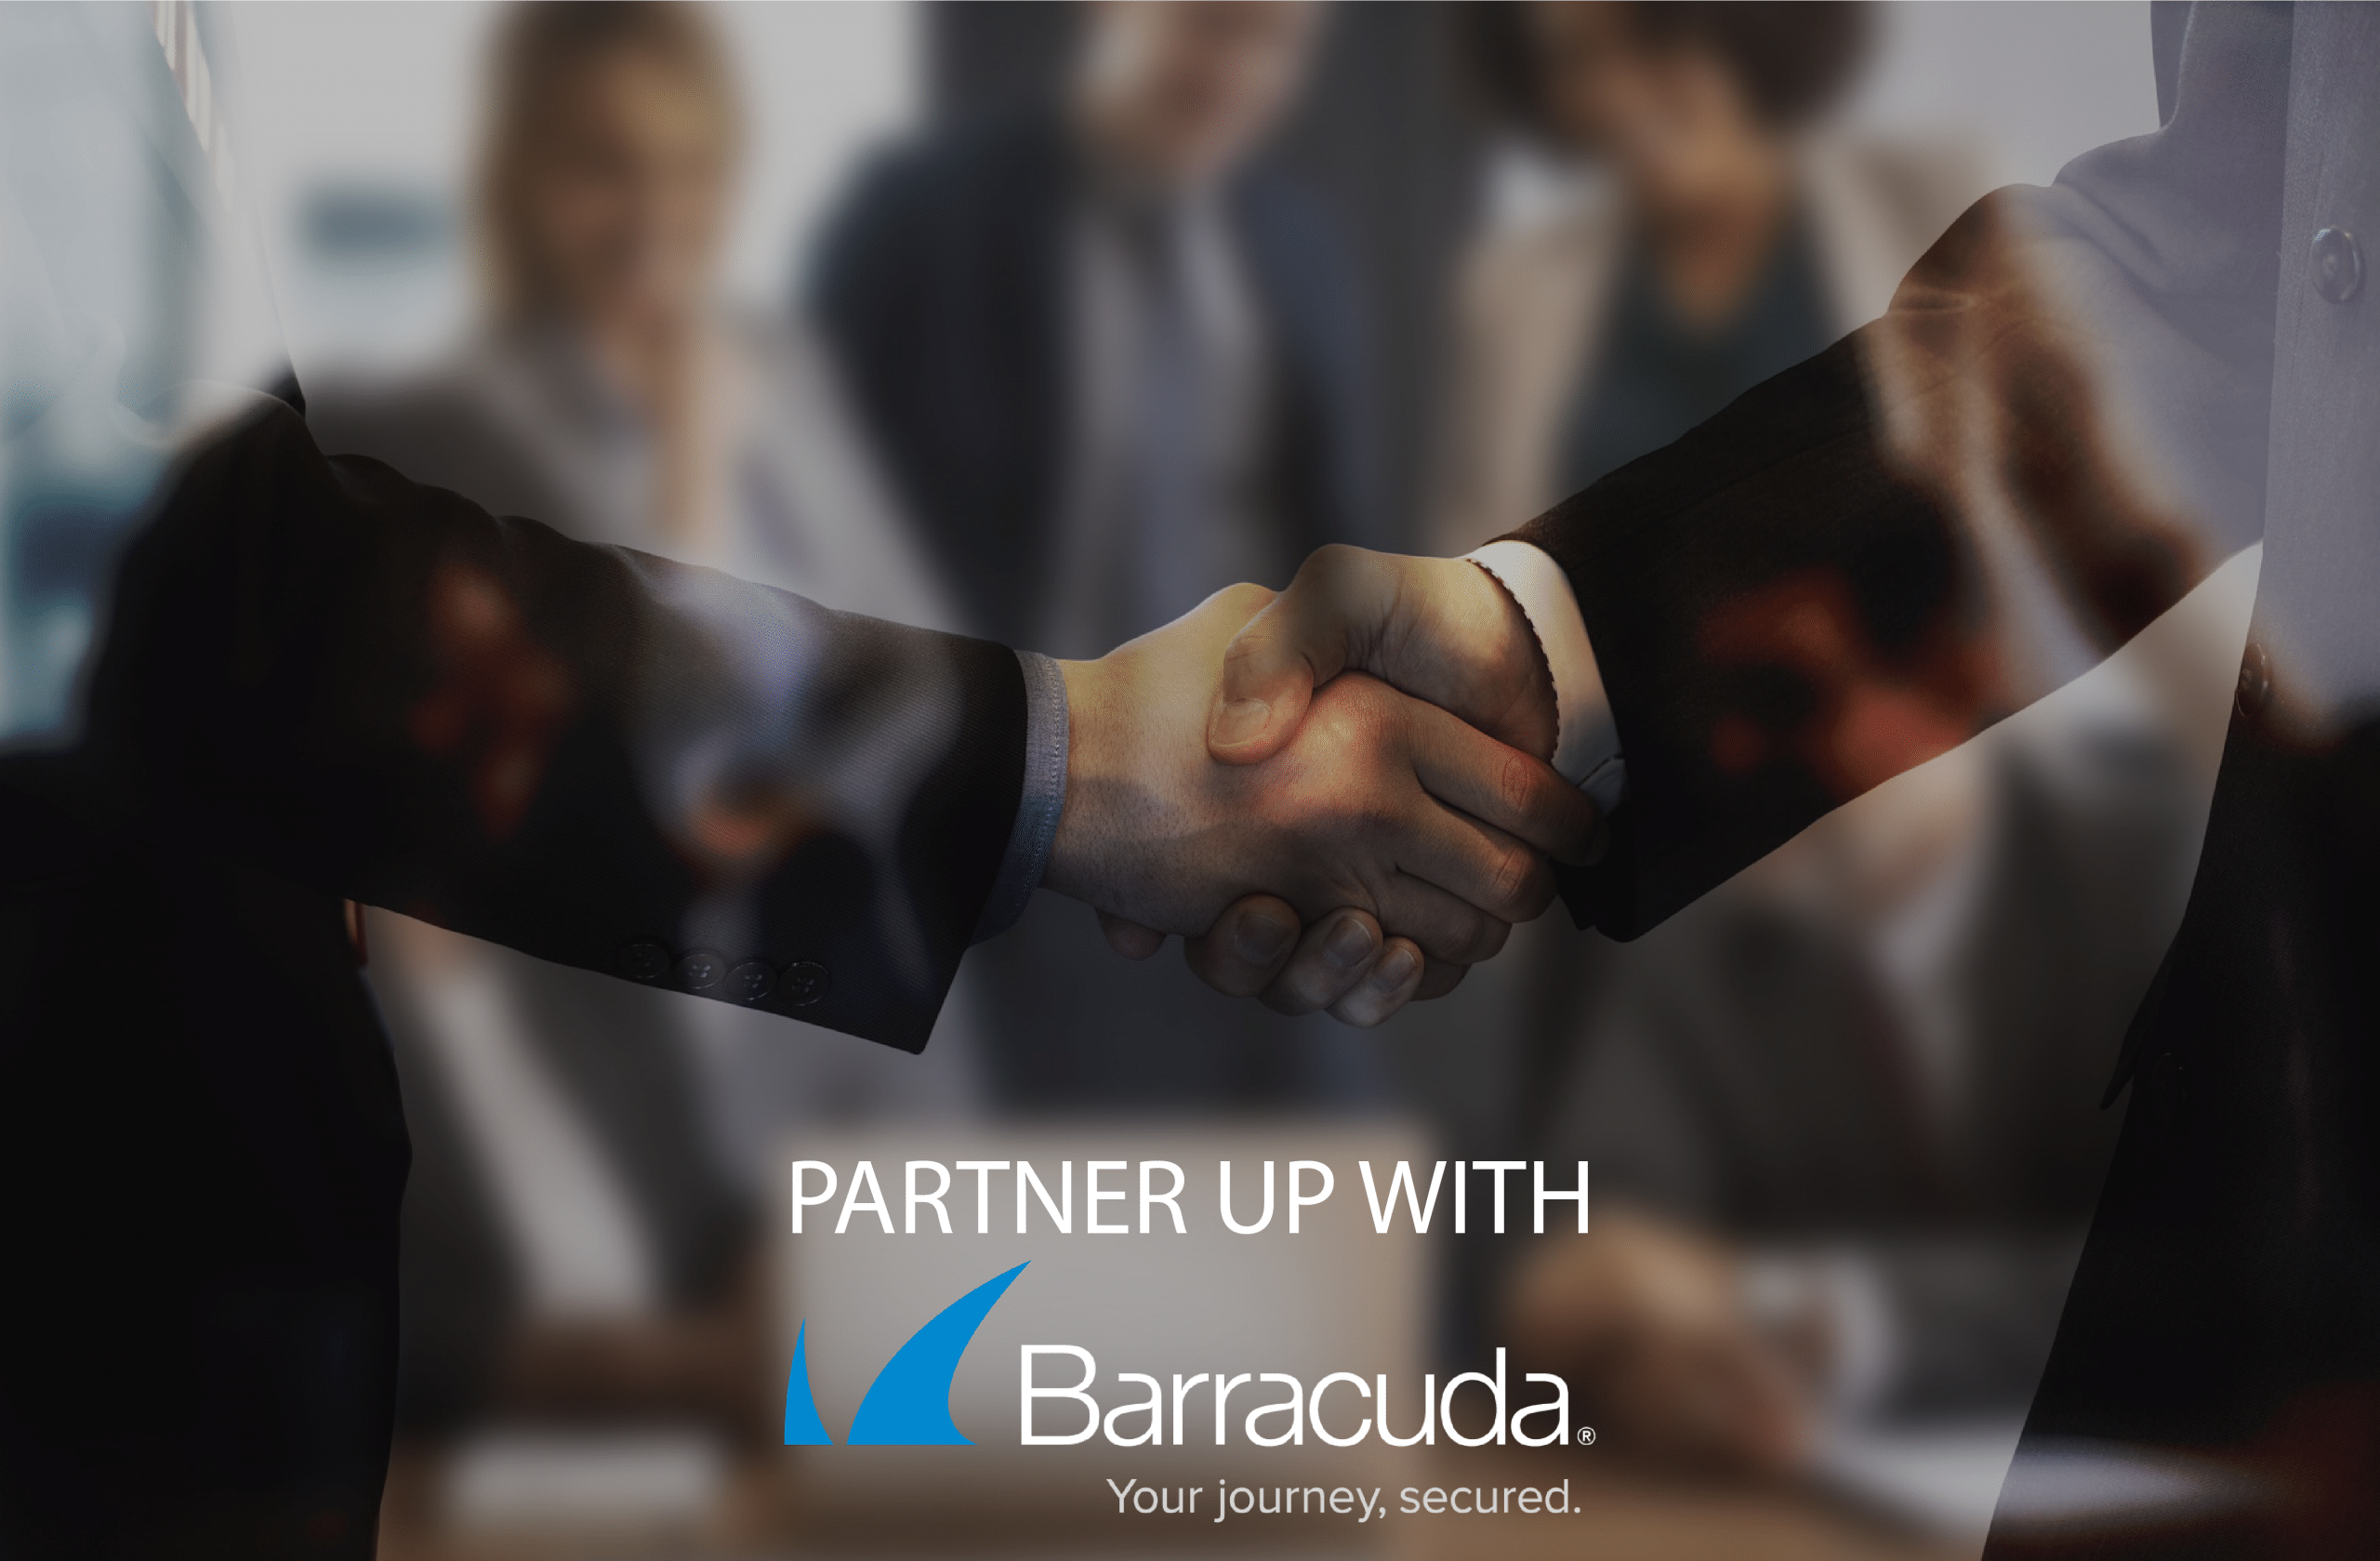 Partner up with Barracuda